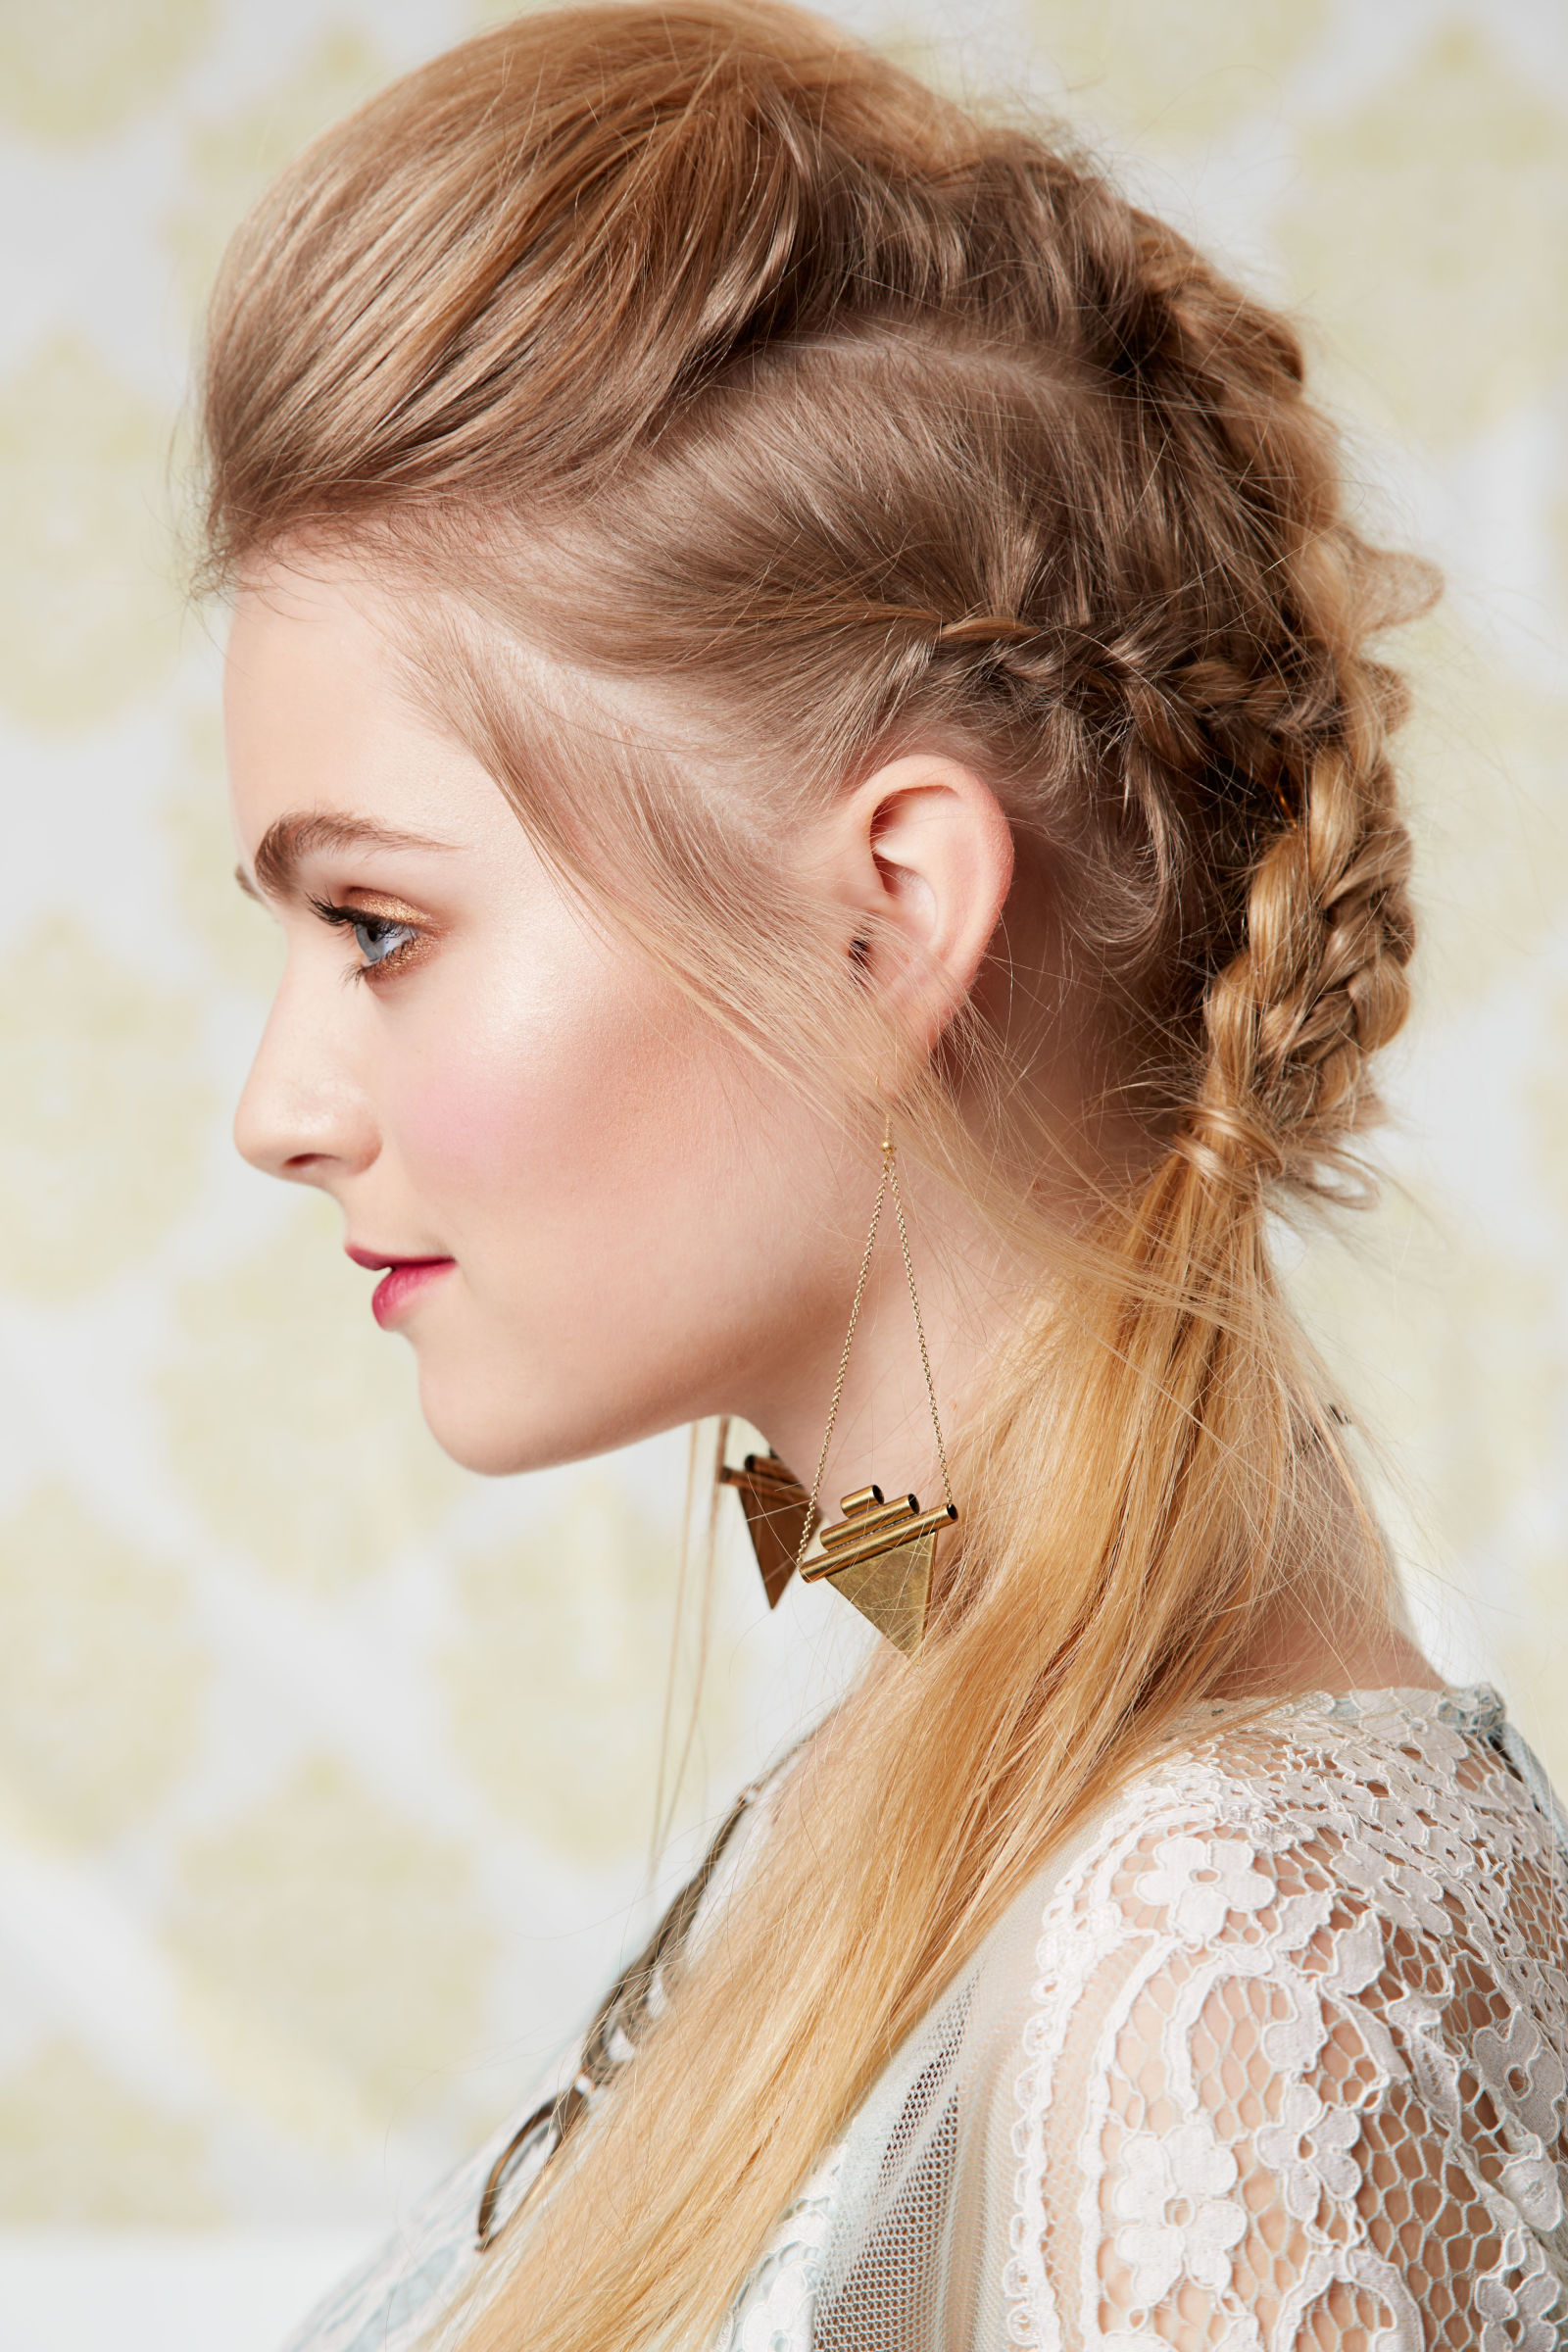 Awesome 9 Cute Easy Hairstyles The Best Hairstyles For Dirty Hair Hairstyle Inspiration Daily Dogsangcom